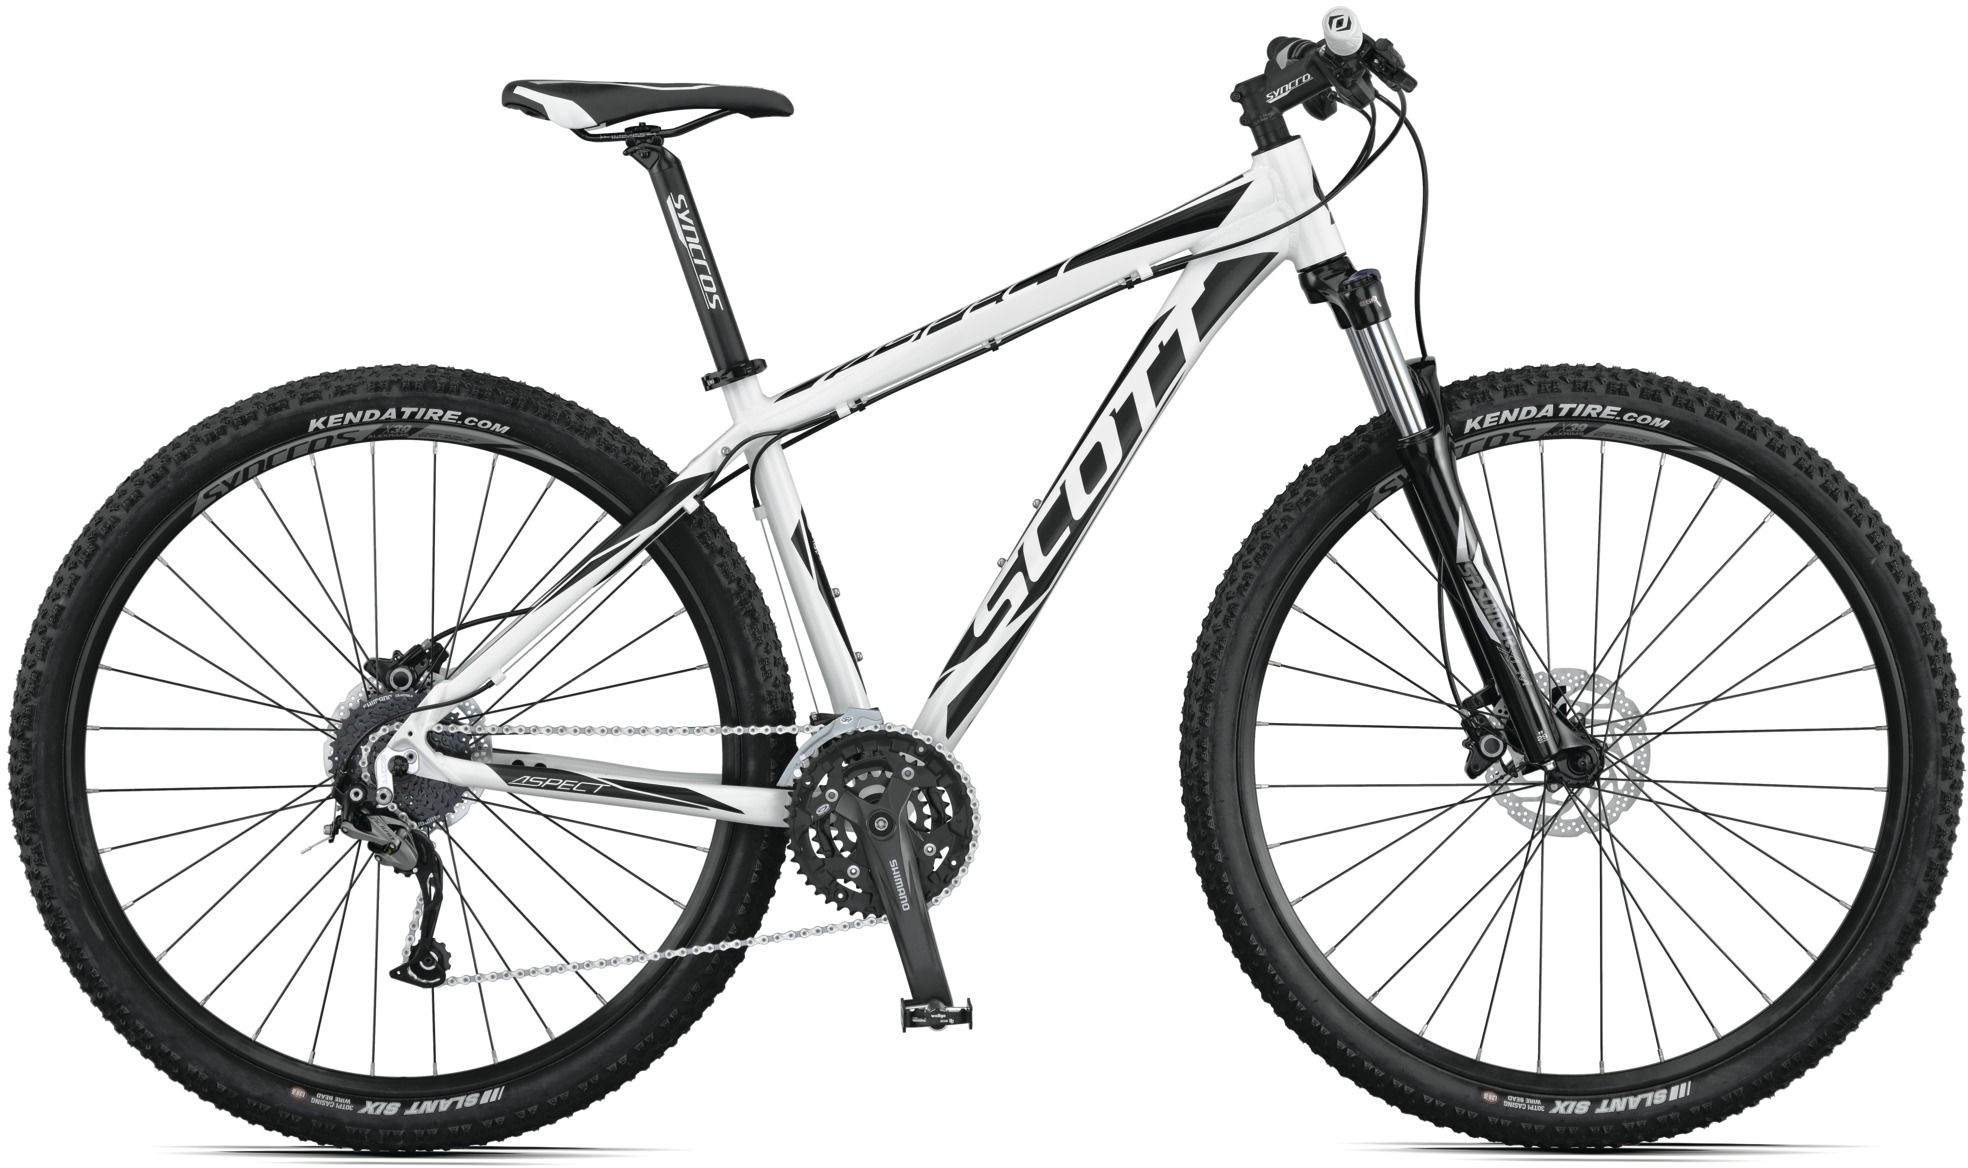 Scott Aspect 940 2015 review - The Bike List